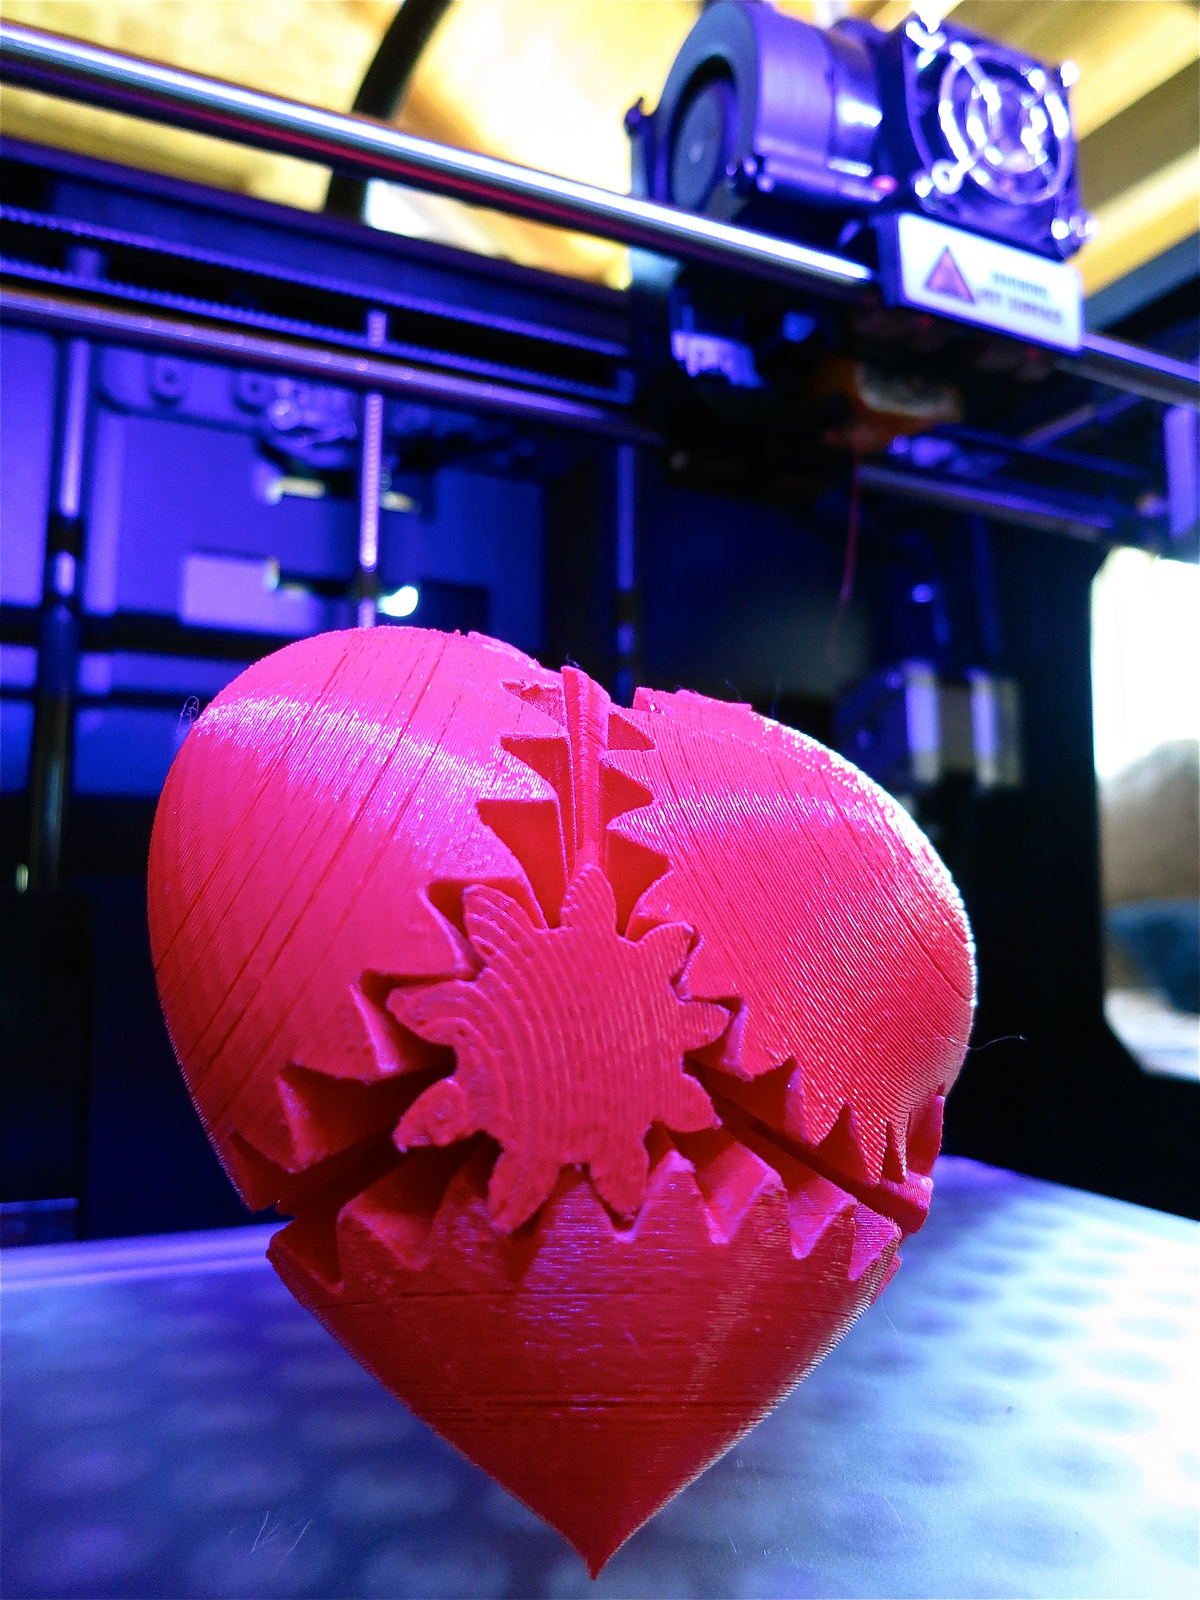 Role of 3D printing in today's world!